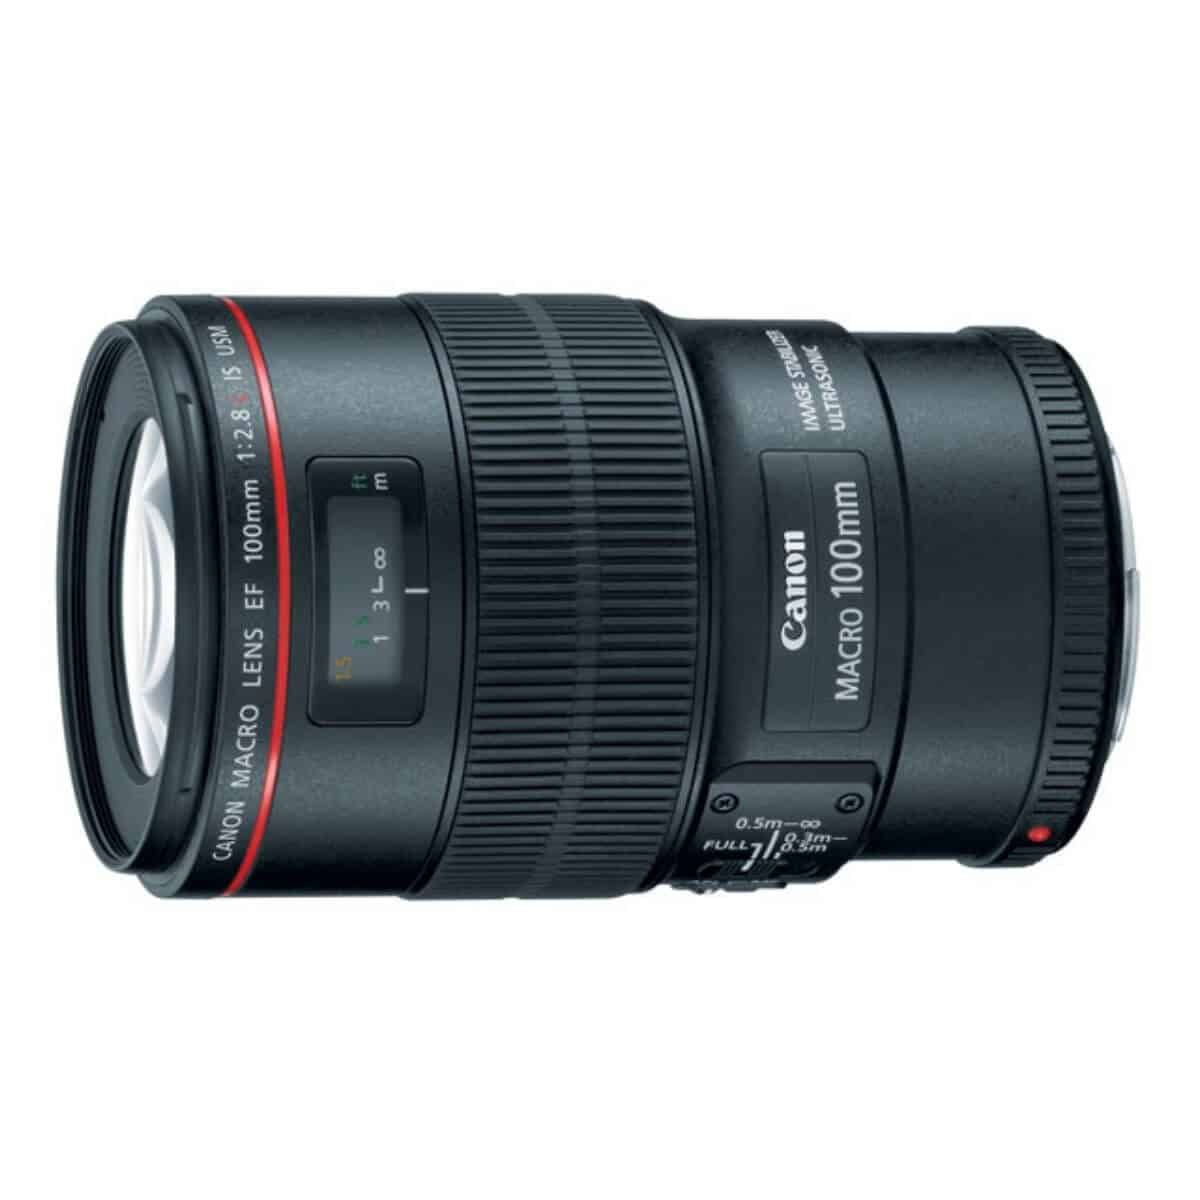 Side view of the Canon 100mm macro lens.